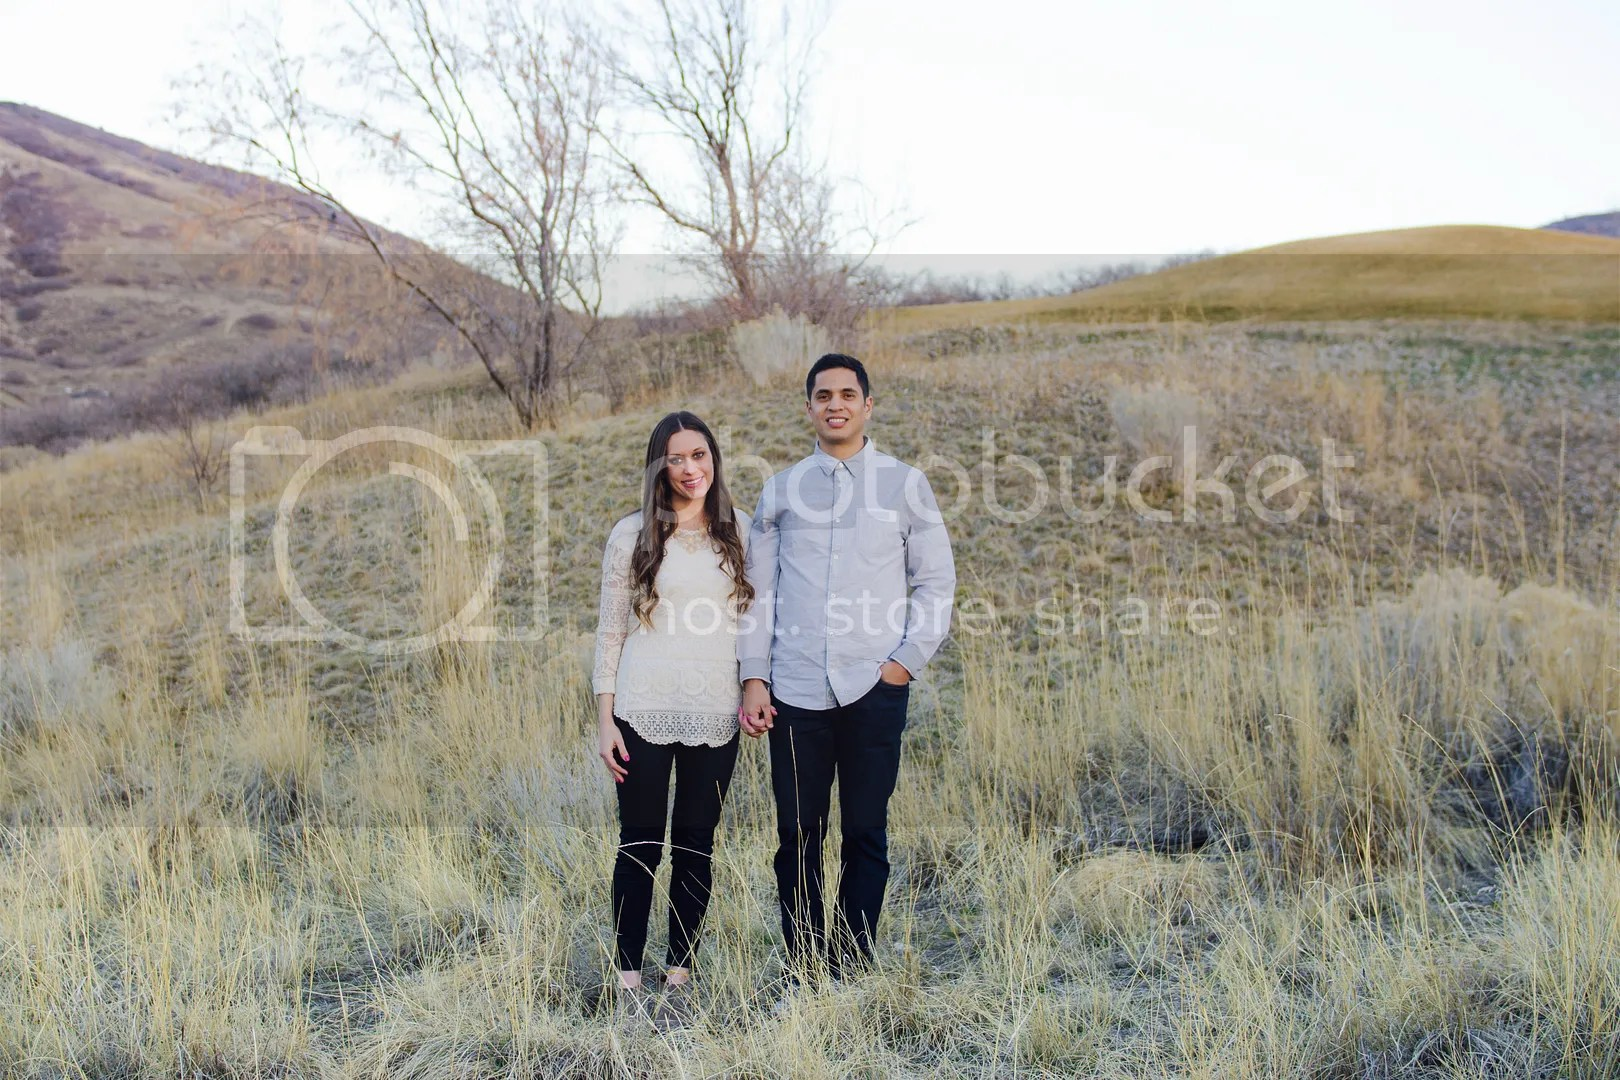 photo HaileyandJacobEngagements2KSimmons_21_zpsocgdkke3.jpg